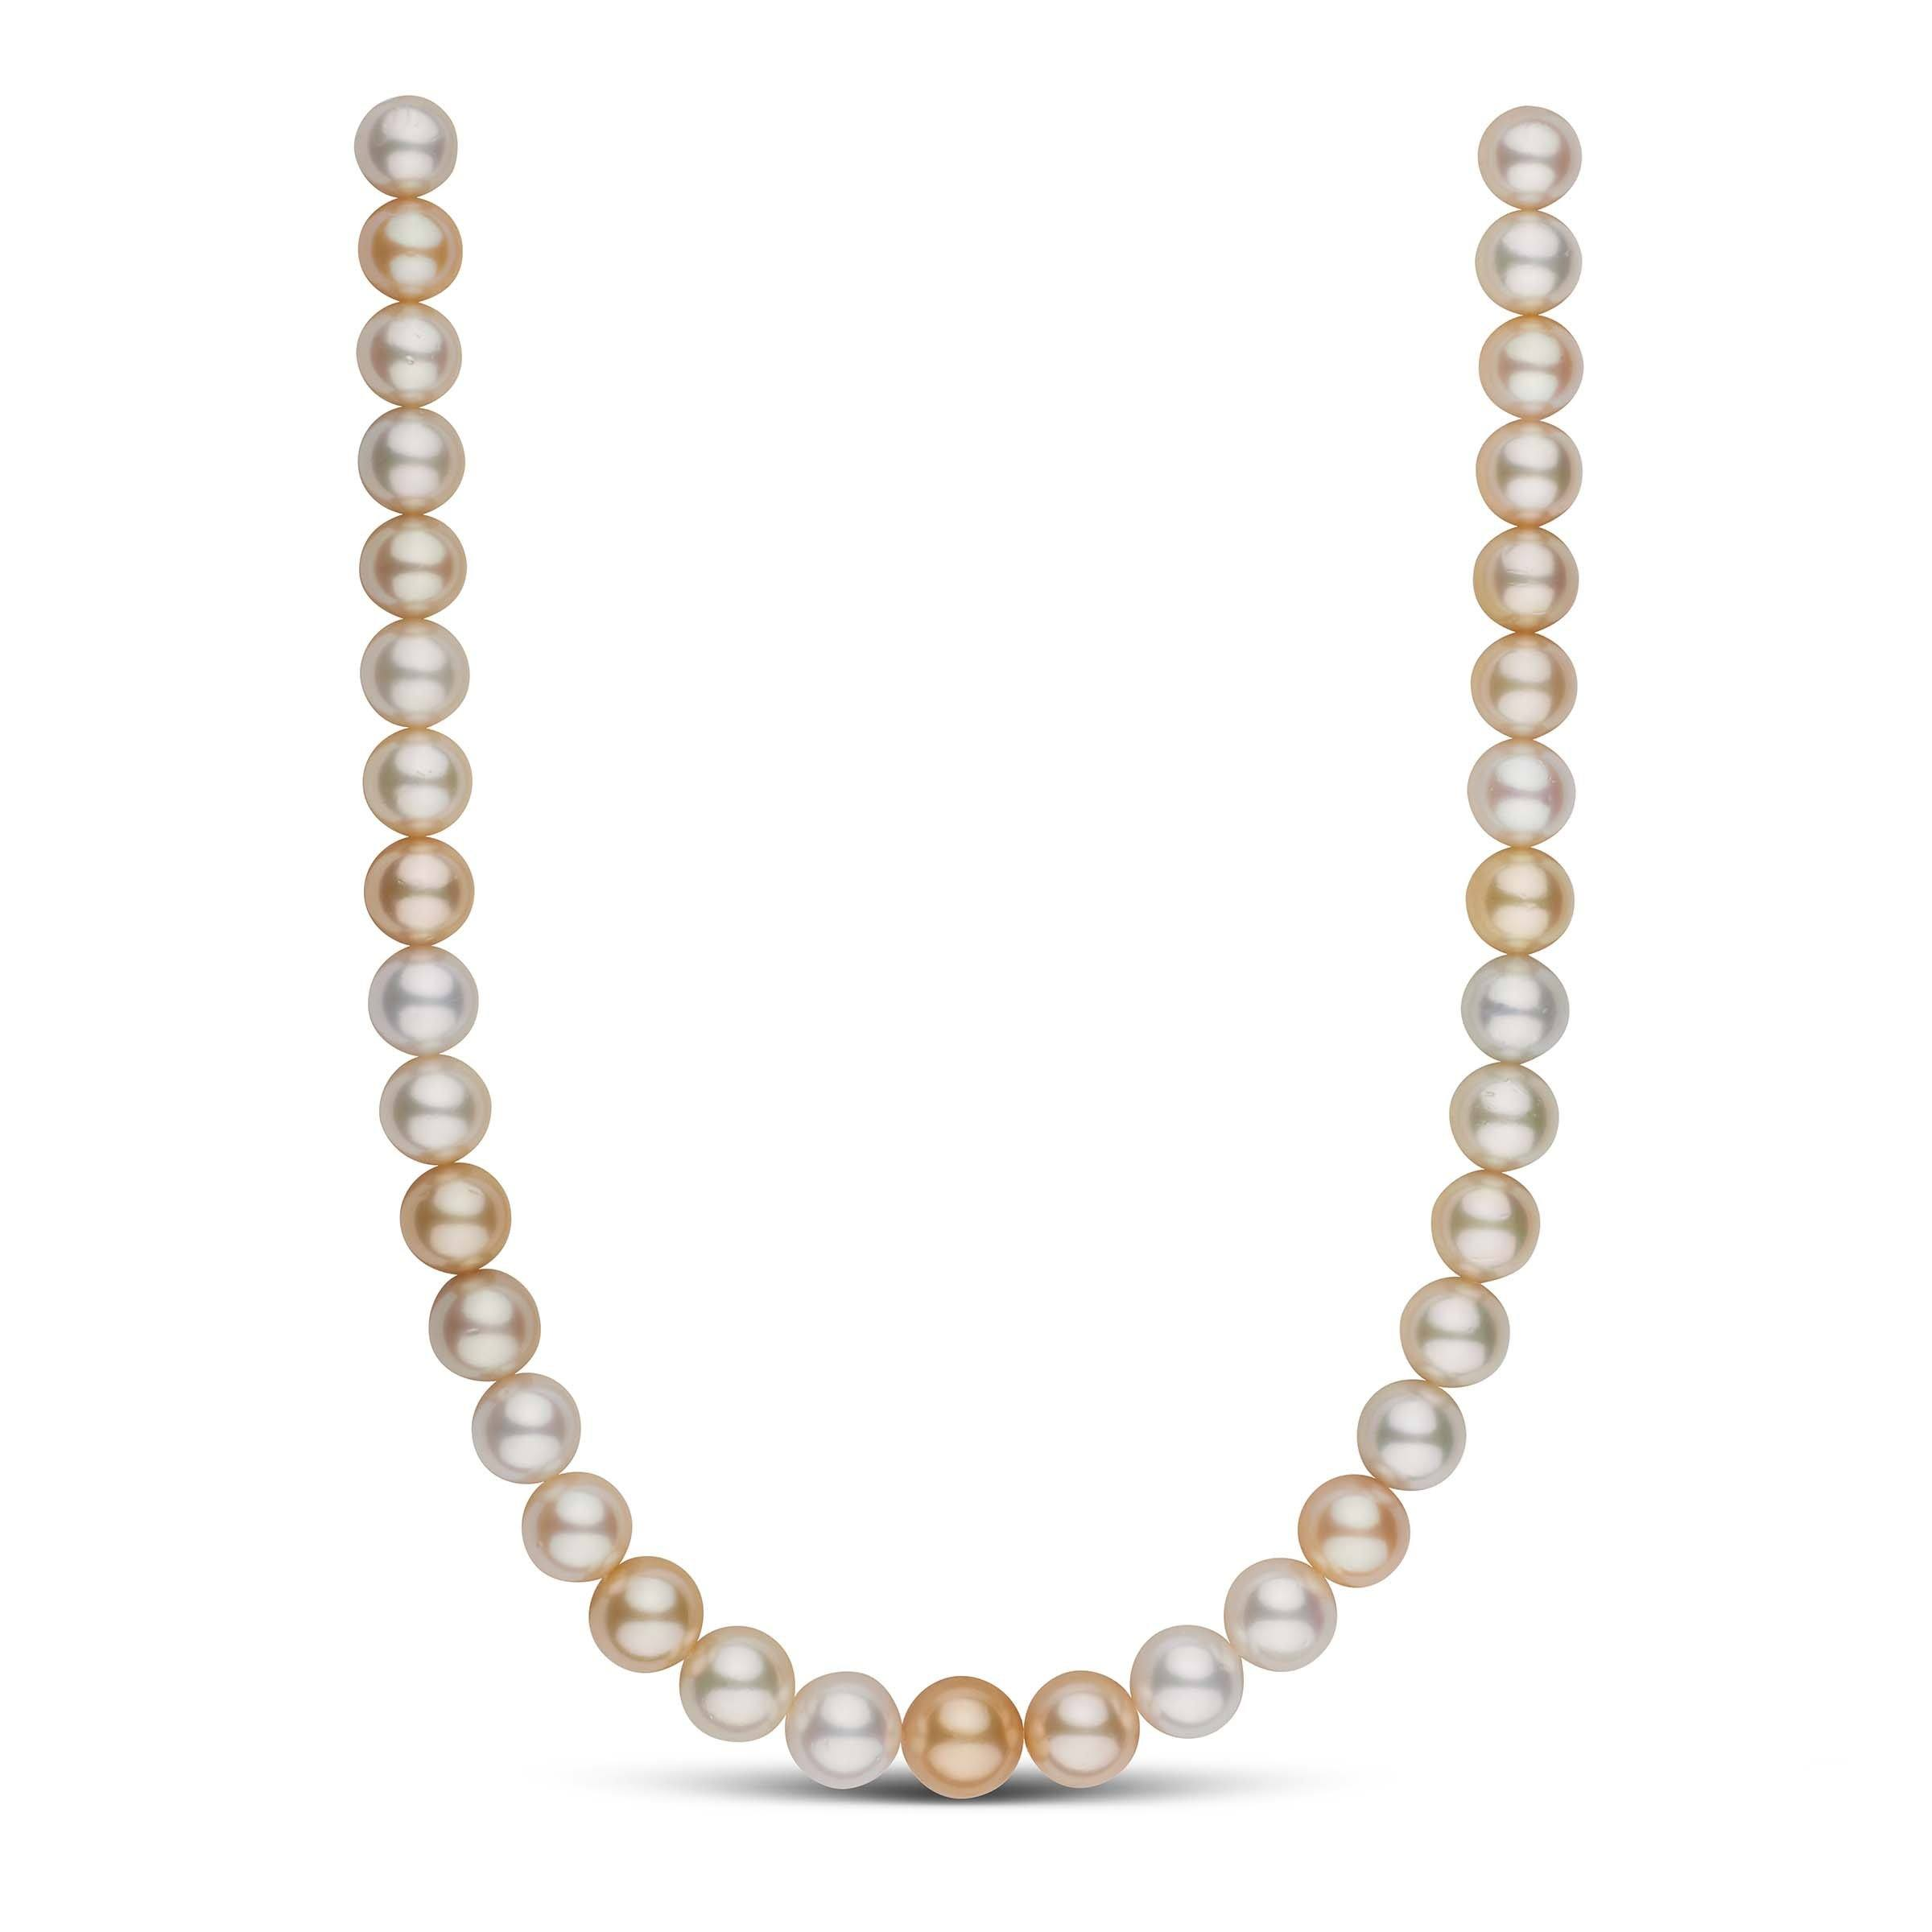 11.0-13.1 mm AA+ Mixed Round White and Golden South Sea Pearl Necklace